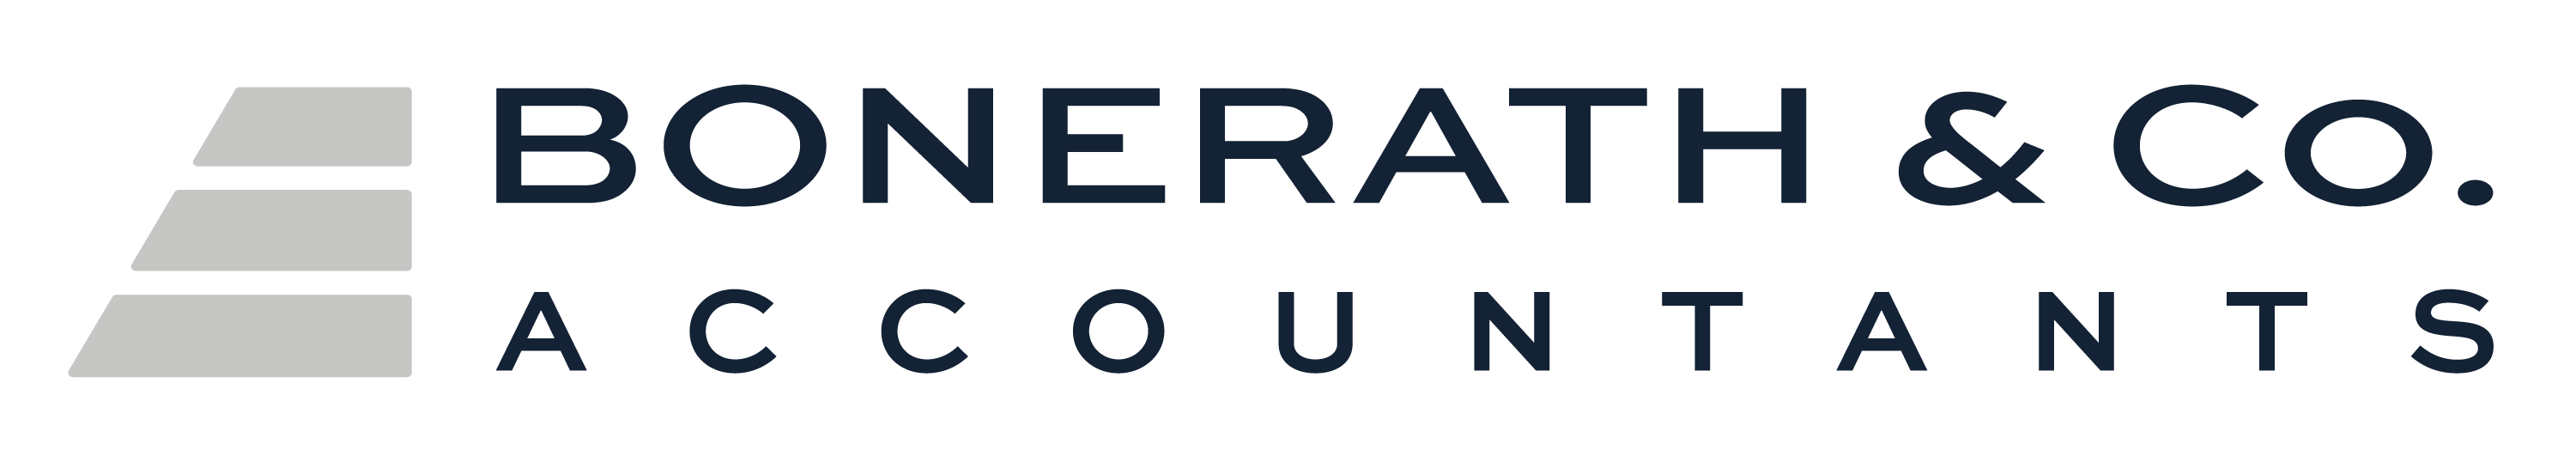 Bonerath & Co Logo